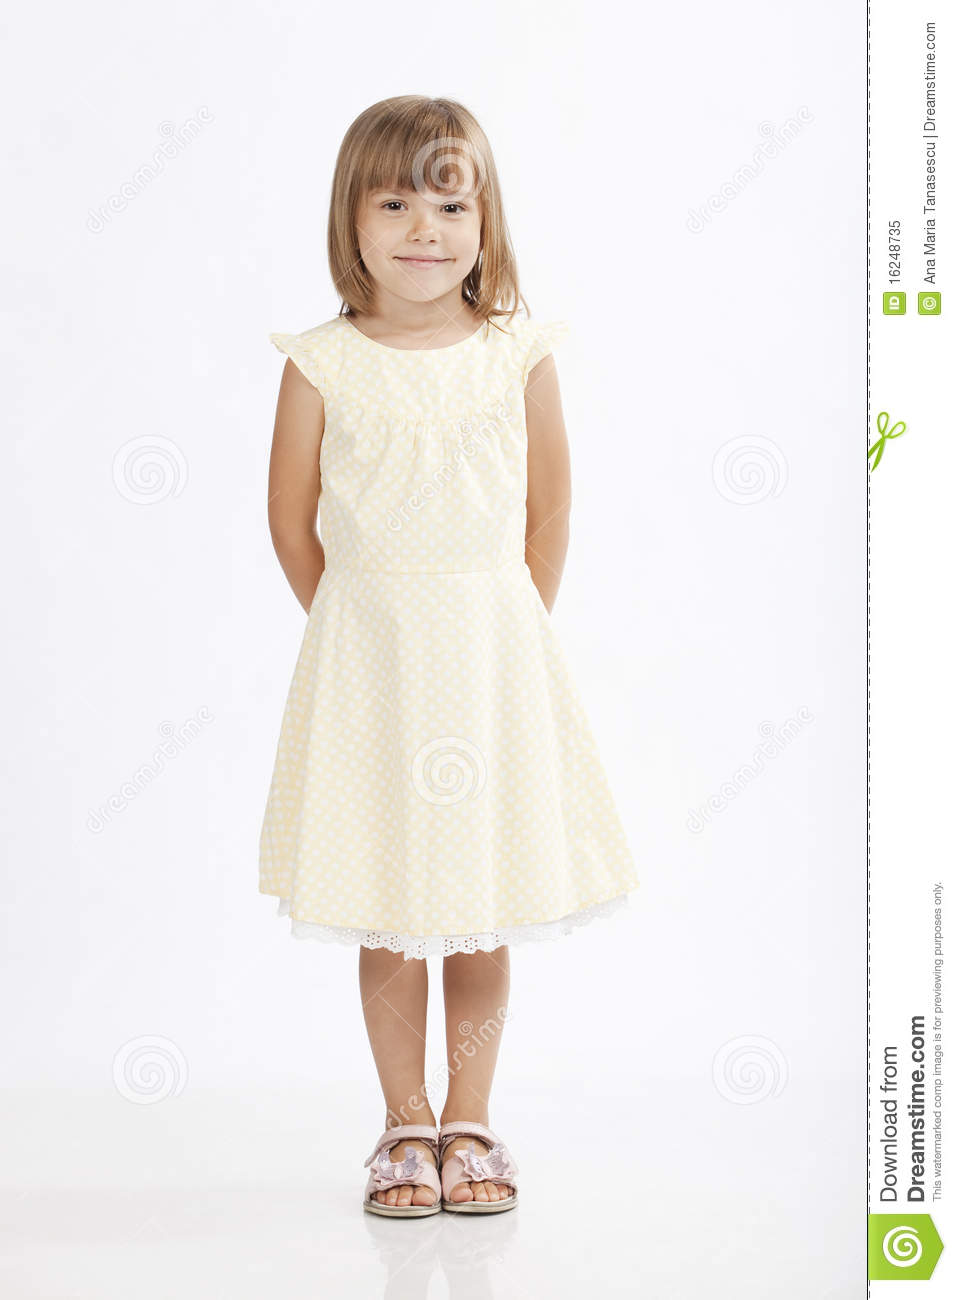 Adorable 5 Years Old Girl Standing Royalty Free Stock Photo  Image